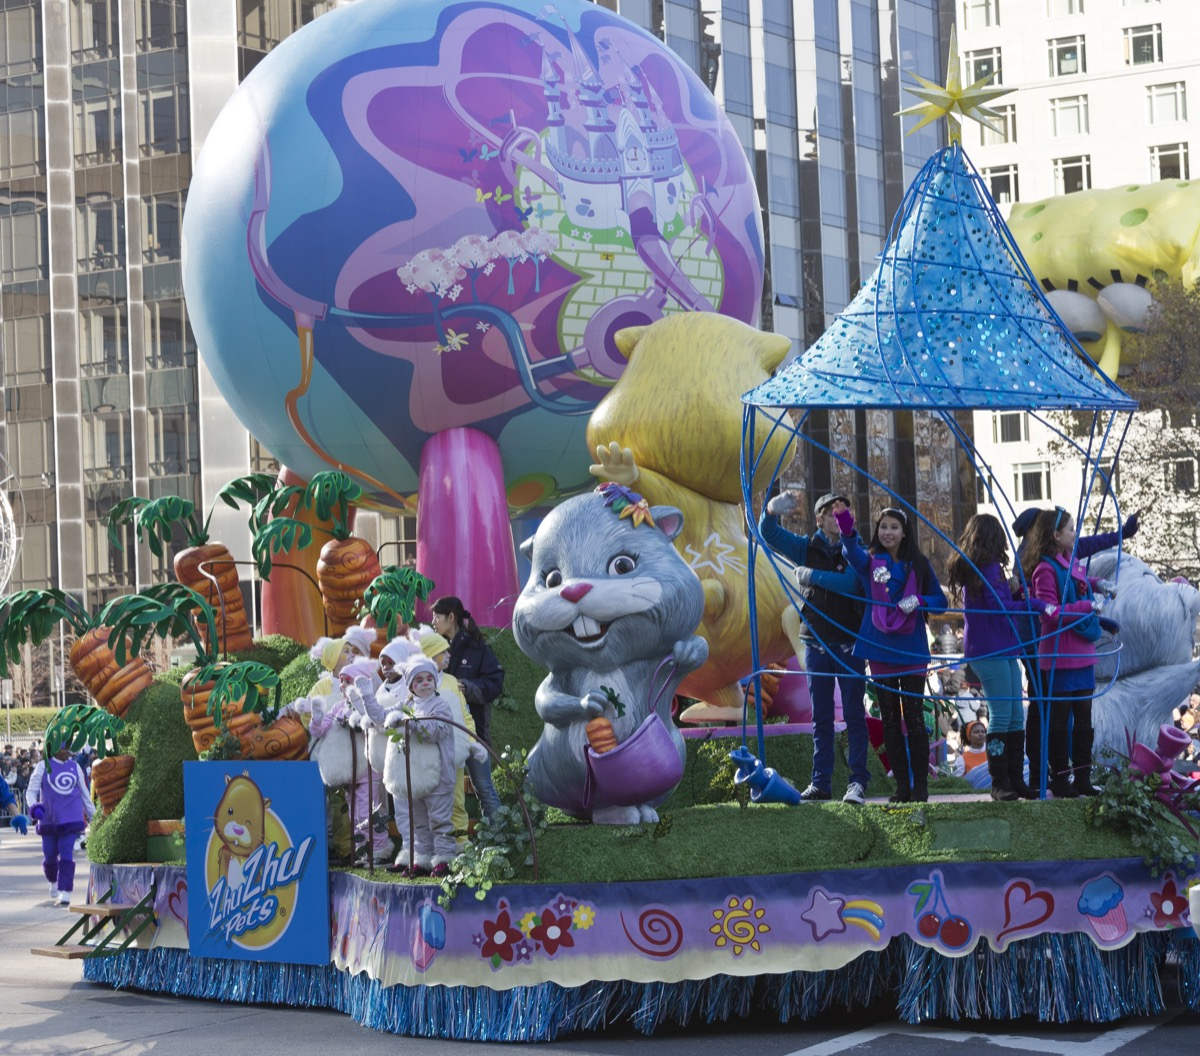 NEW YORK - NOVEMBER 22: Zhu Zhu Pets characters ride the float at the 86th Annual Macy's Thanksgiving Day Parade on November 22, 2012 in New York City. - Image